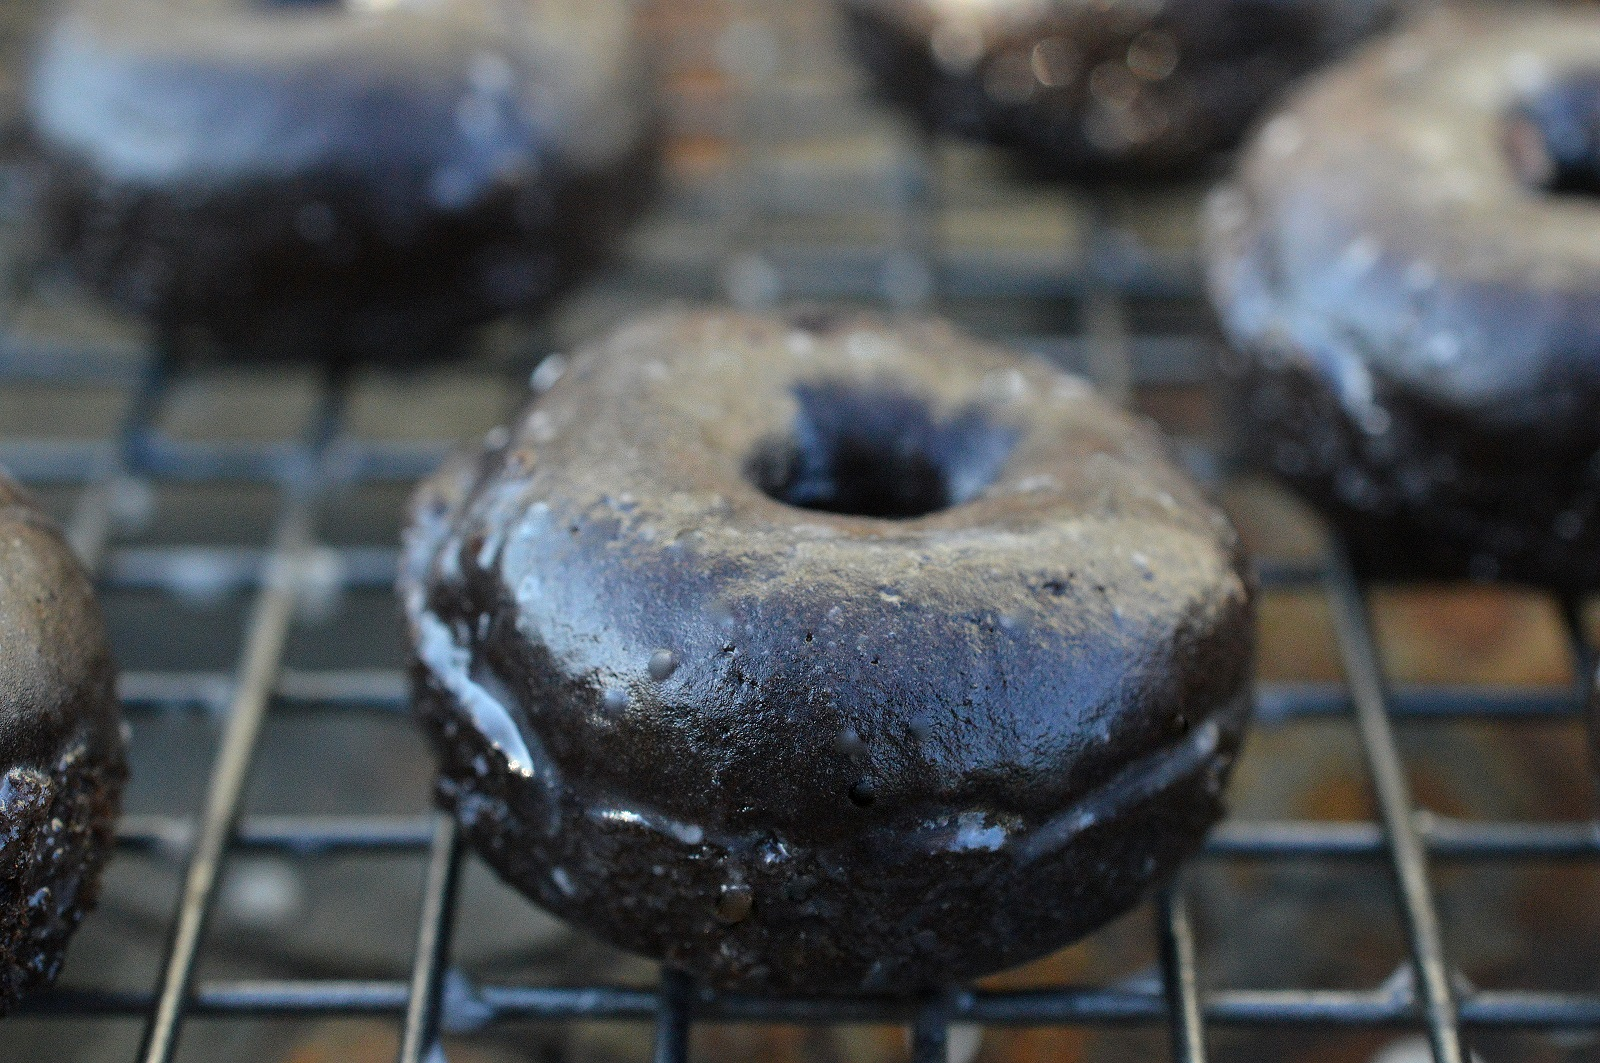 Easy to make Double Glazed Chocolate Donut Recipe, delicious!